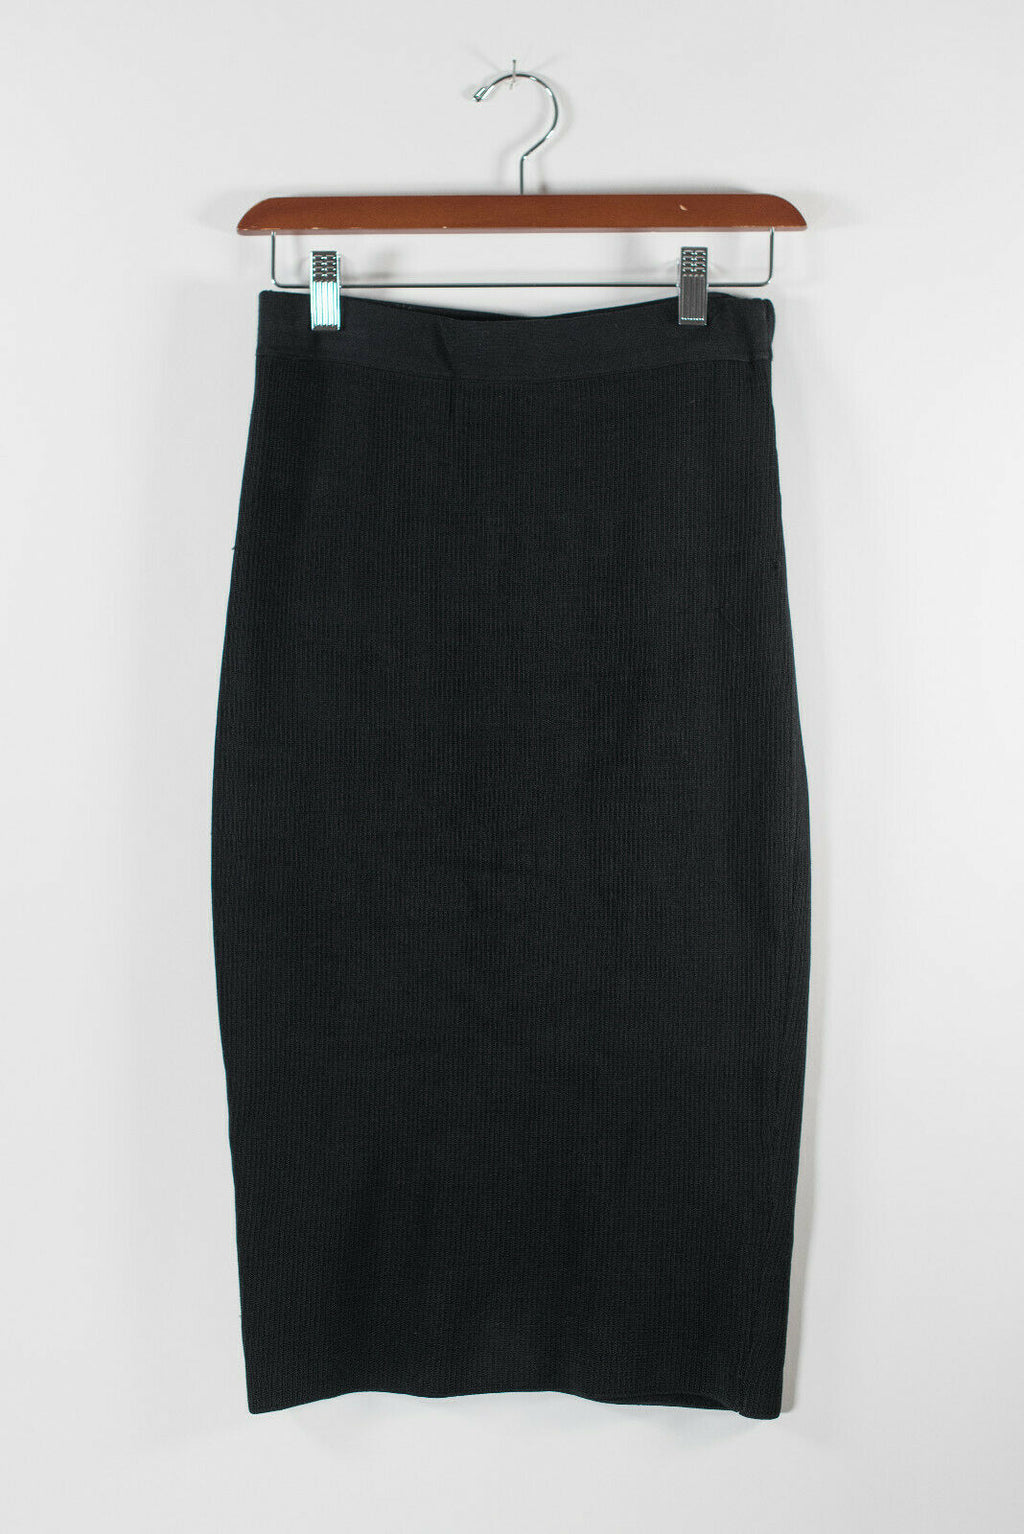 Leith Nordstrom Womens XS Black Pencil Skirt Midi Knit Stretch Elastic Waist